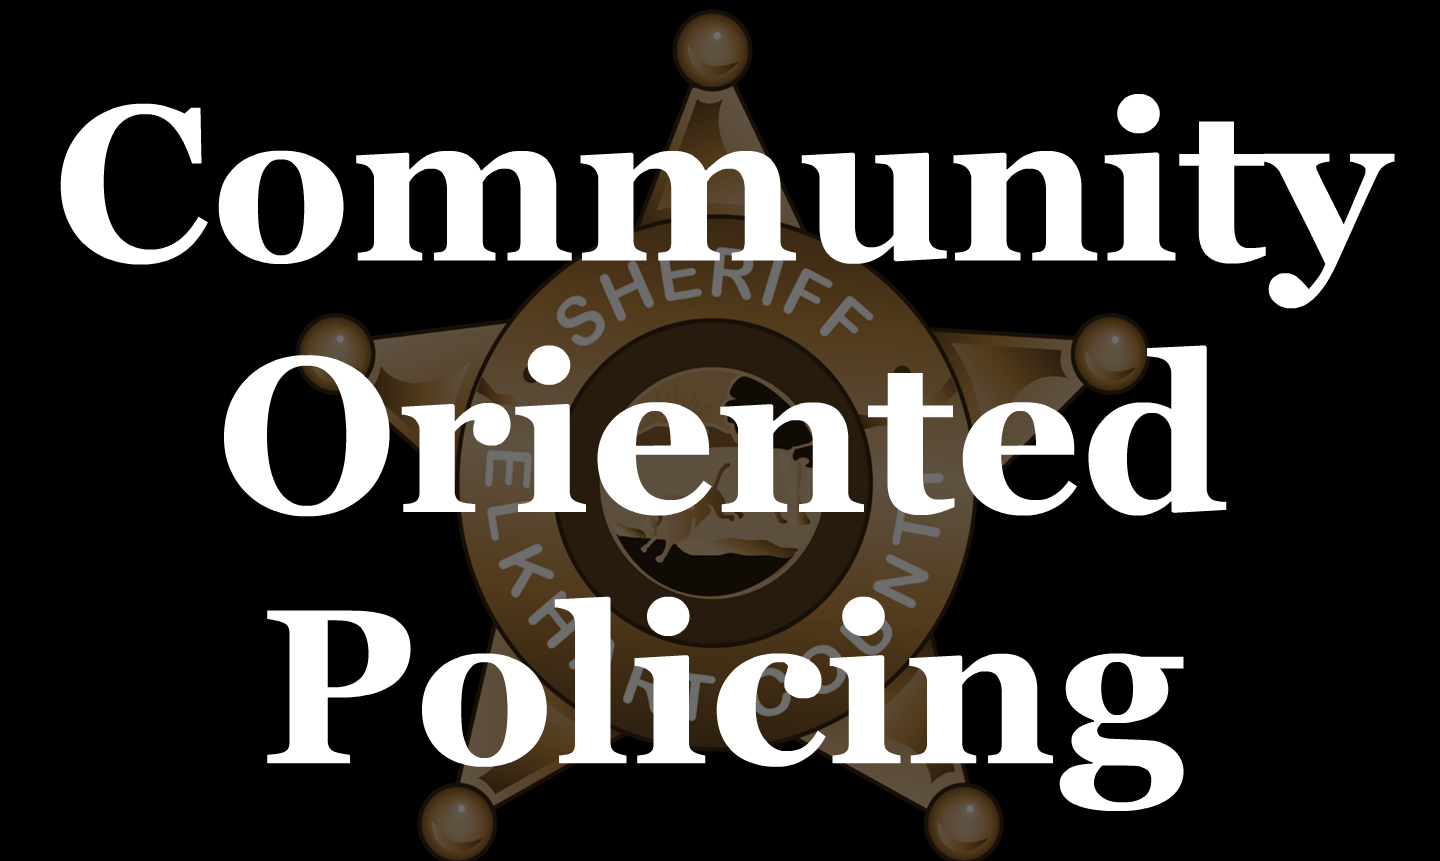 what is community policing Community policing is a type of law enforcement system and philosophy that combines traditional methods with problem-solving techniques that involve community cooperation and partnerships, according to thefreedictionary by farlex one of its main objectives is to avoid alienation of law enforcement .